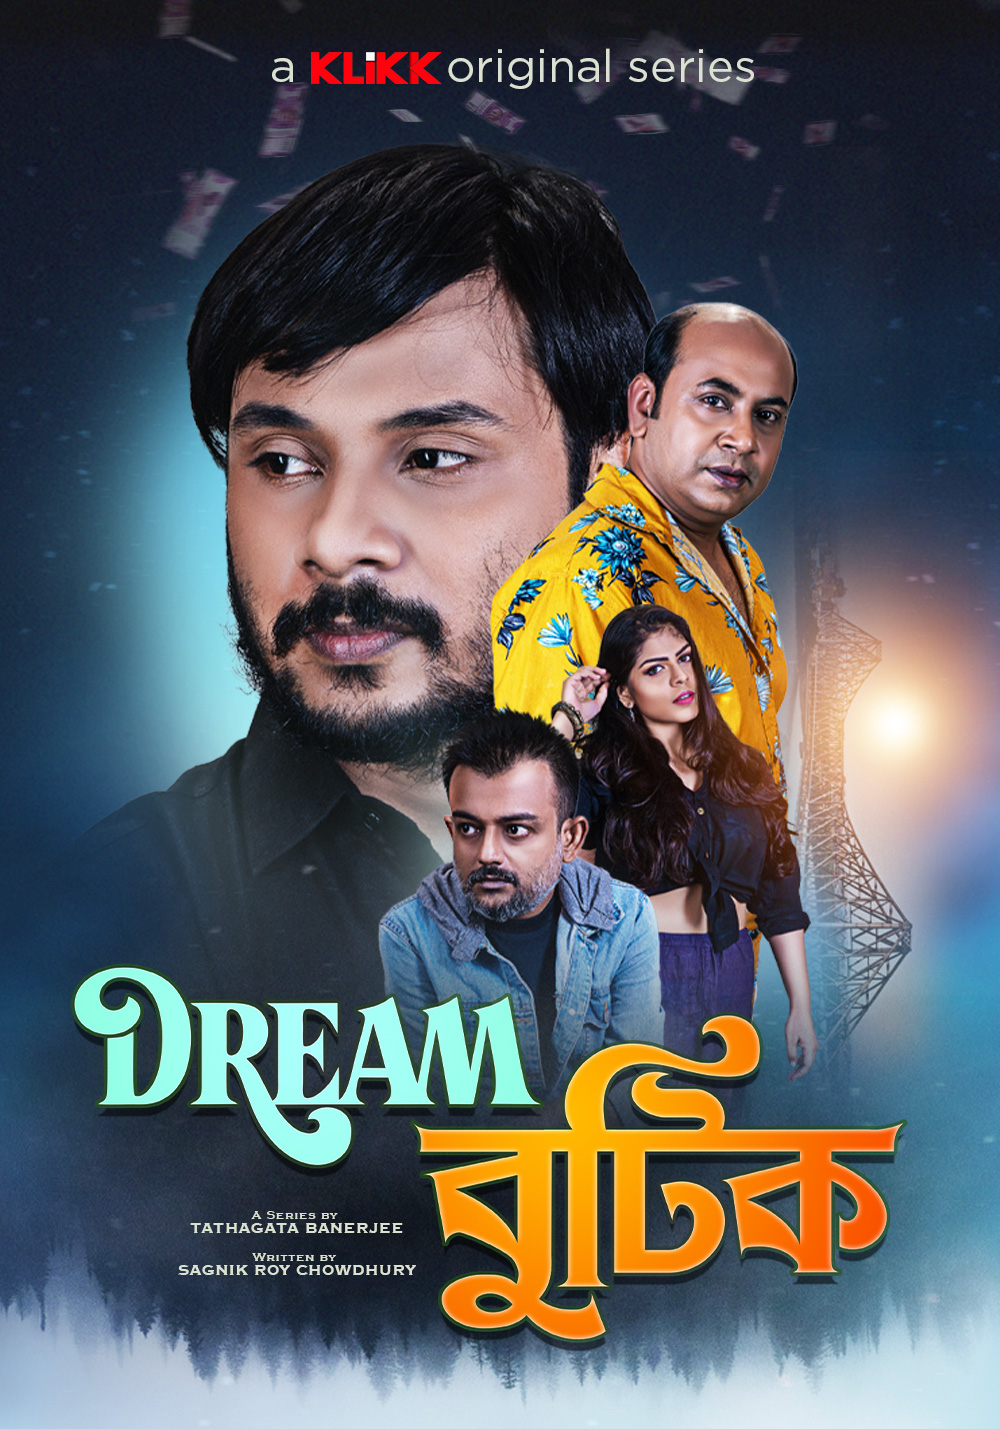 Dream Boutique 2021 Bengali Full Movies 720p HDRip 1.1GB x264 AAC